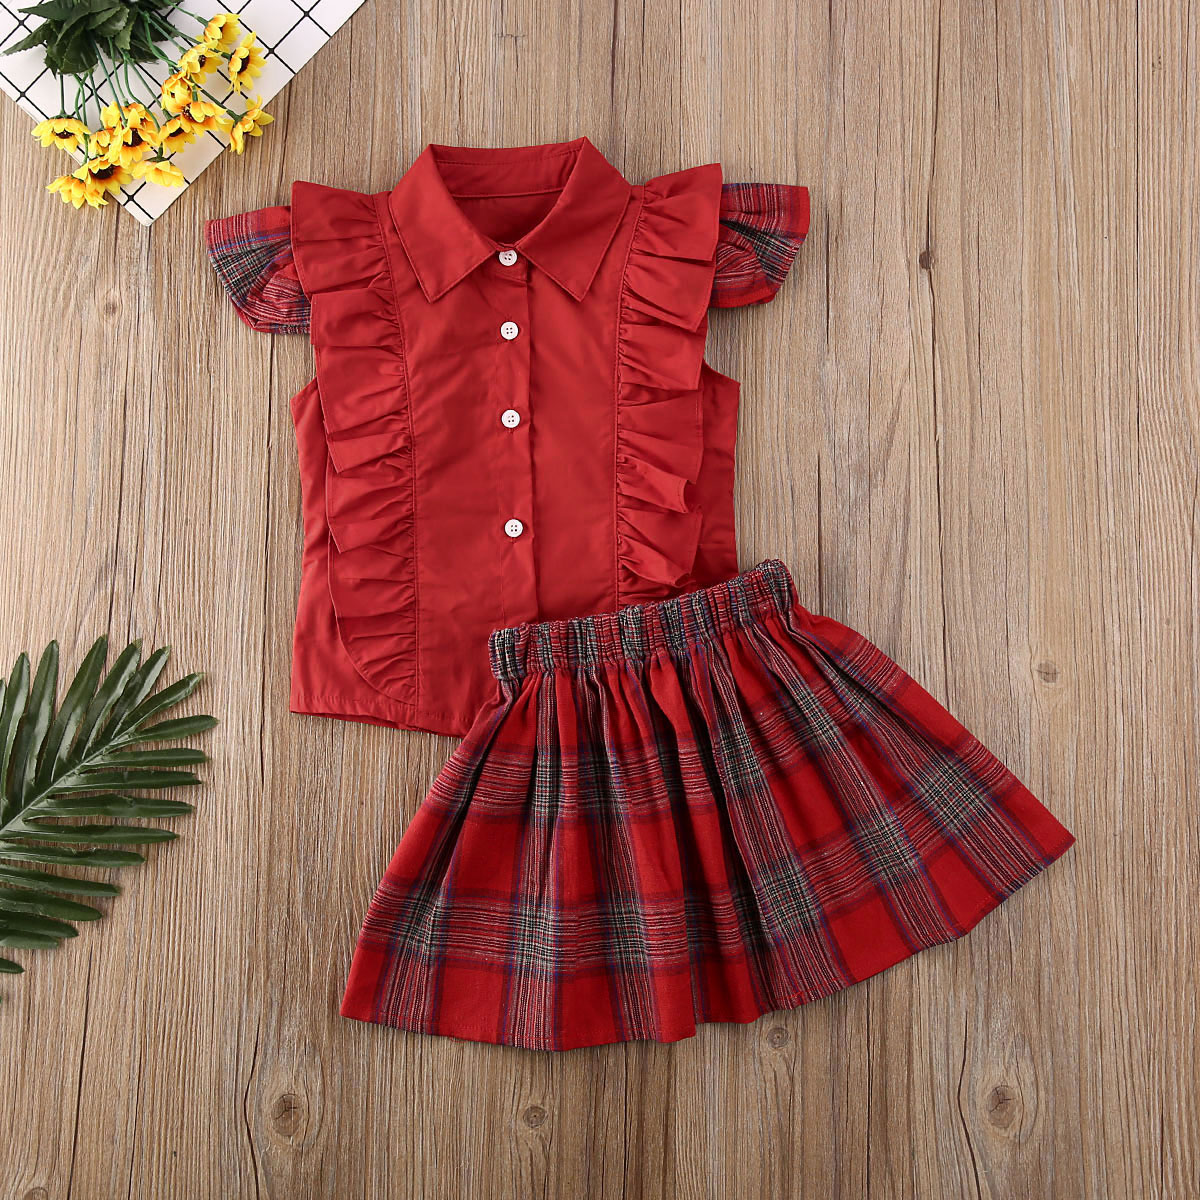 Pudcoco Newest Fashion Toddler Baby Girl Clothes Solid Color Sleeveless Ruffle Tops Plaids Mini Skirt 2Pcs Outfits Clothes